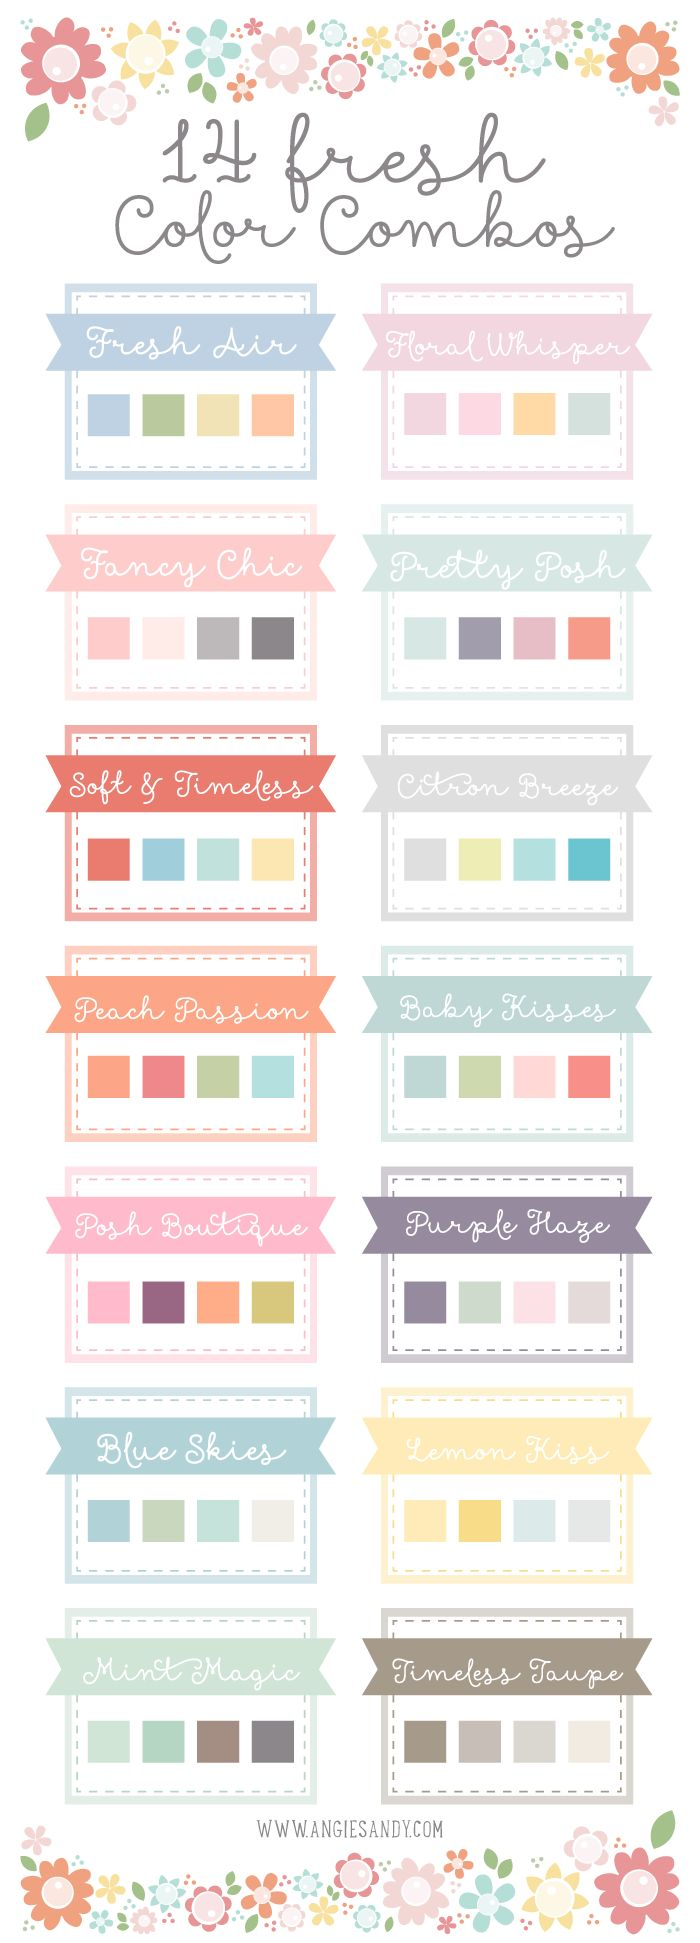 14 Fresh Color Combos